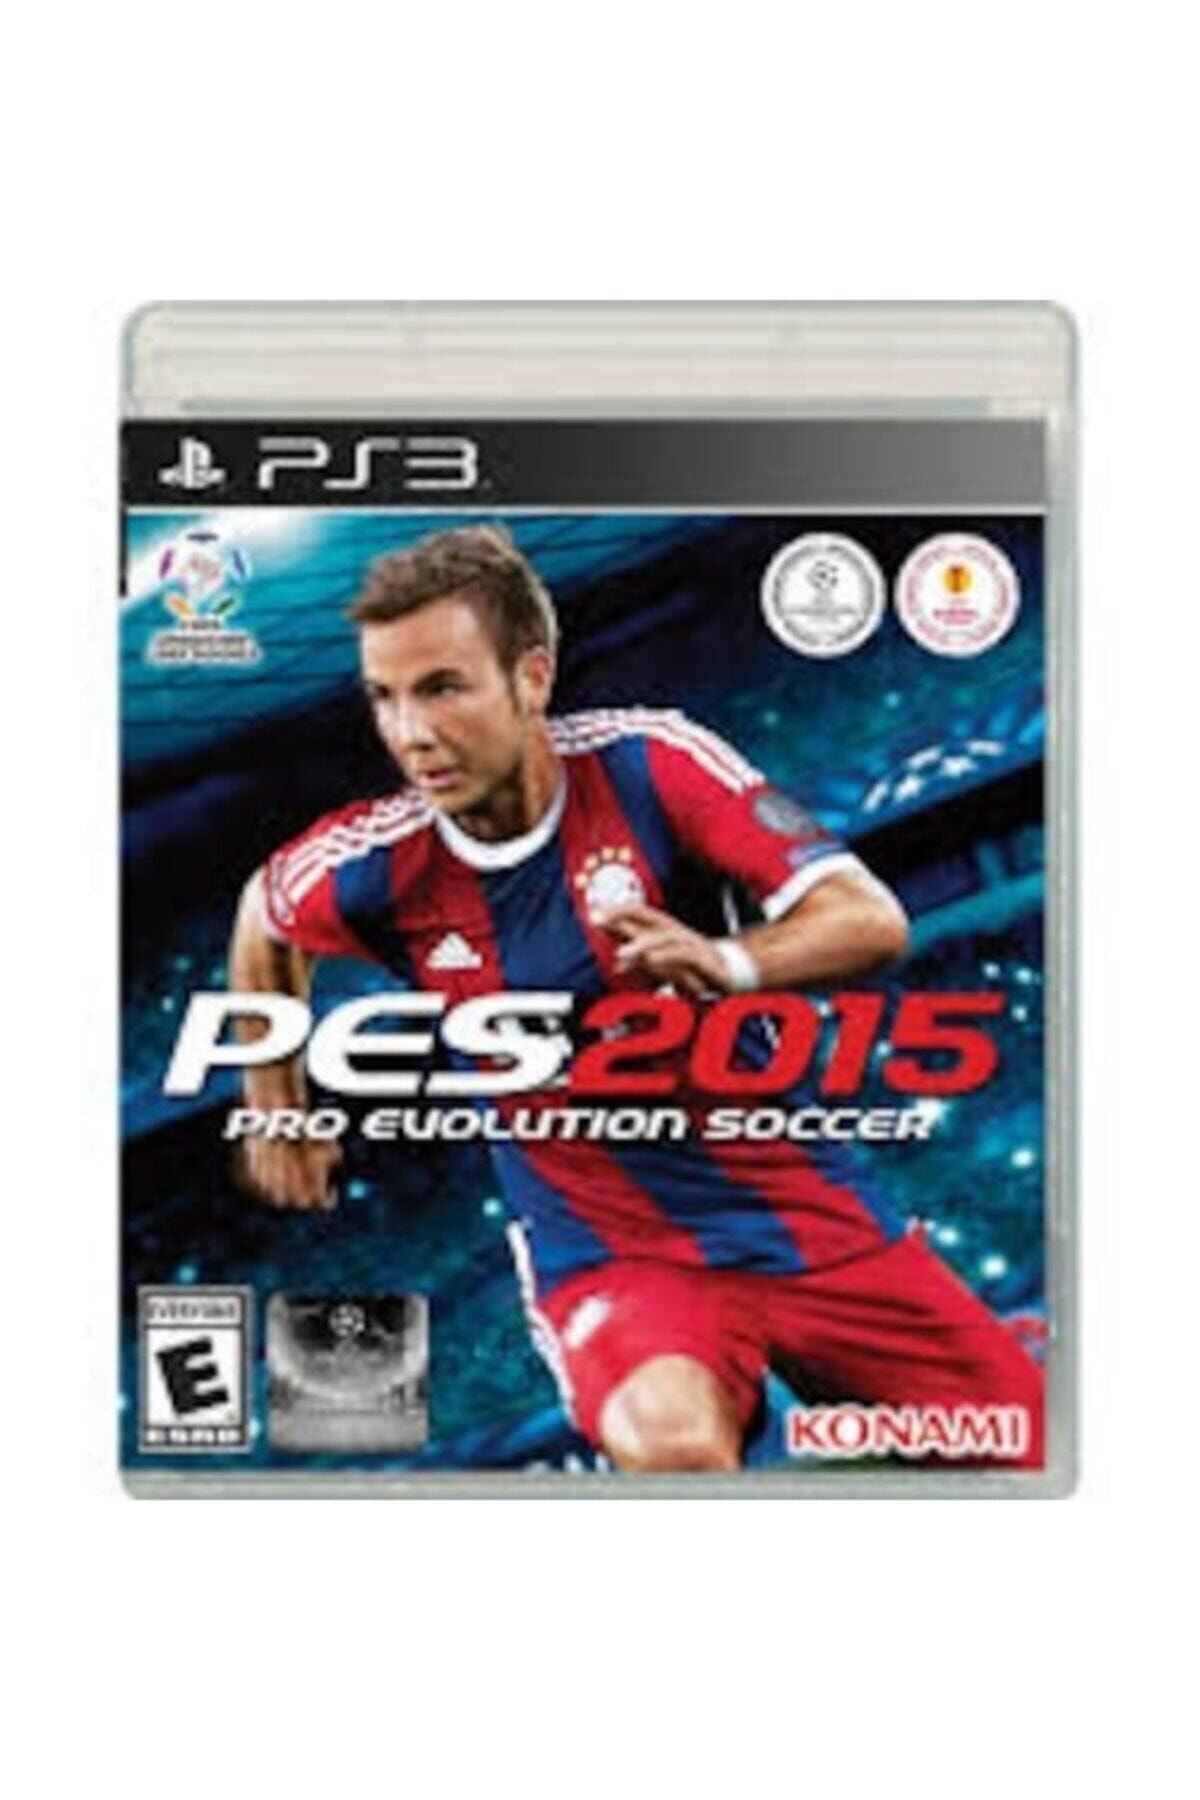 KONAMI Pro Evolution Soccer 2015 Pes15 Ps3 Oyunu 1